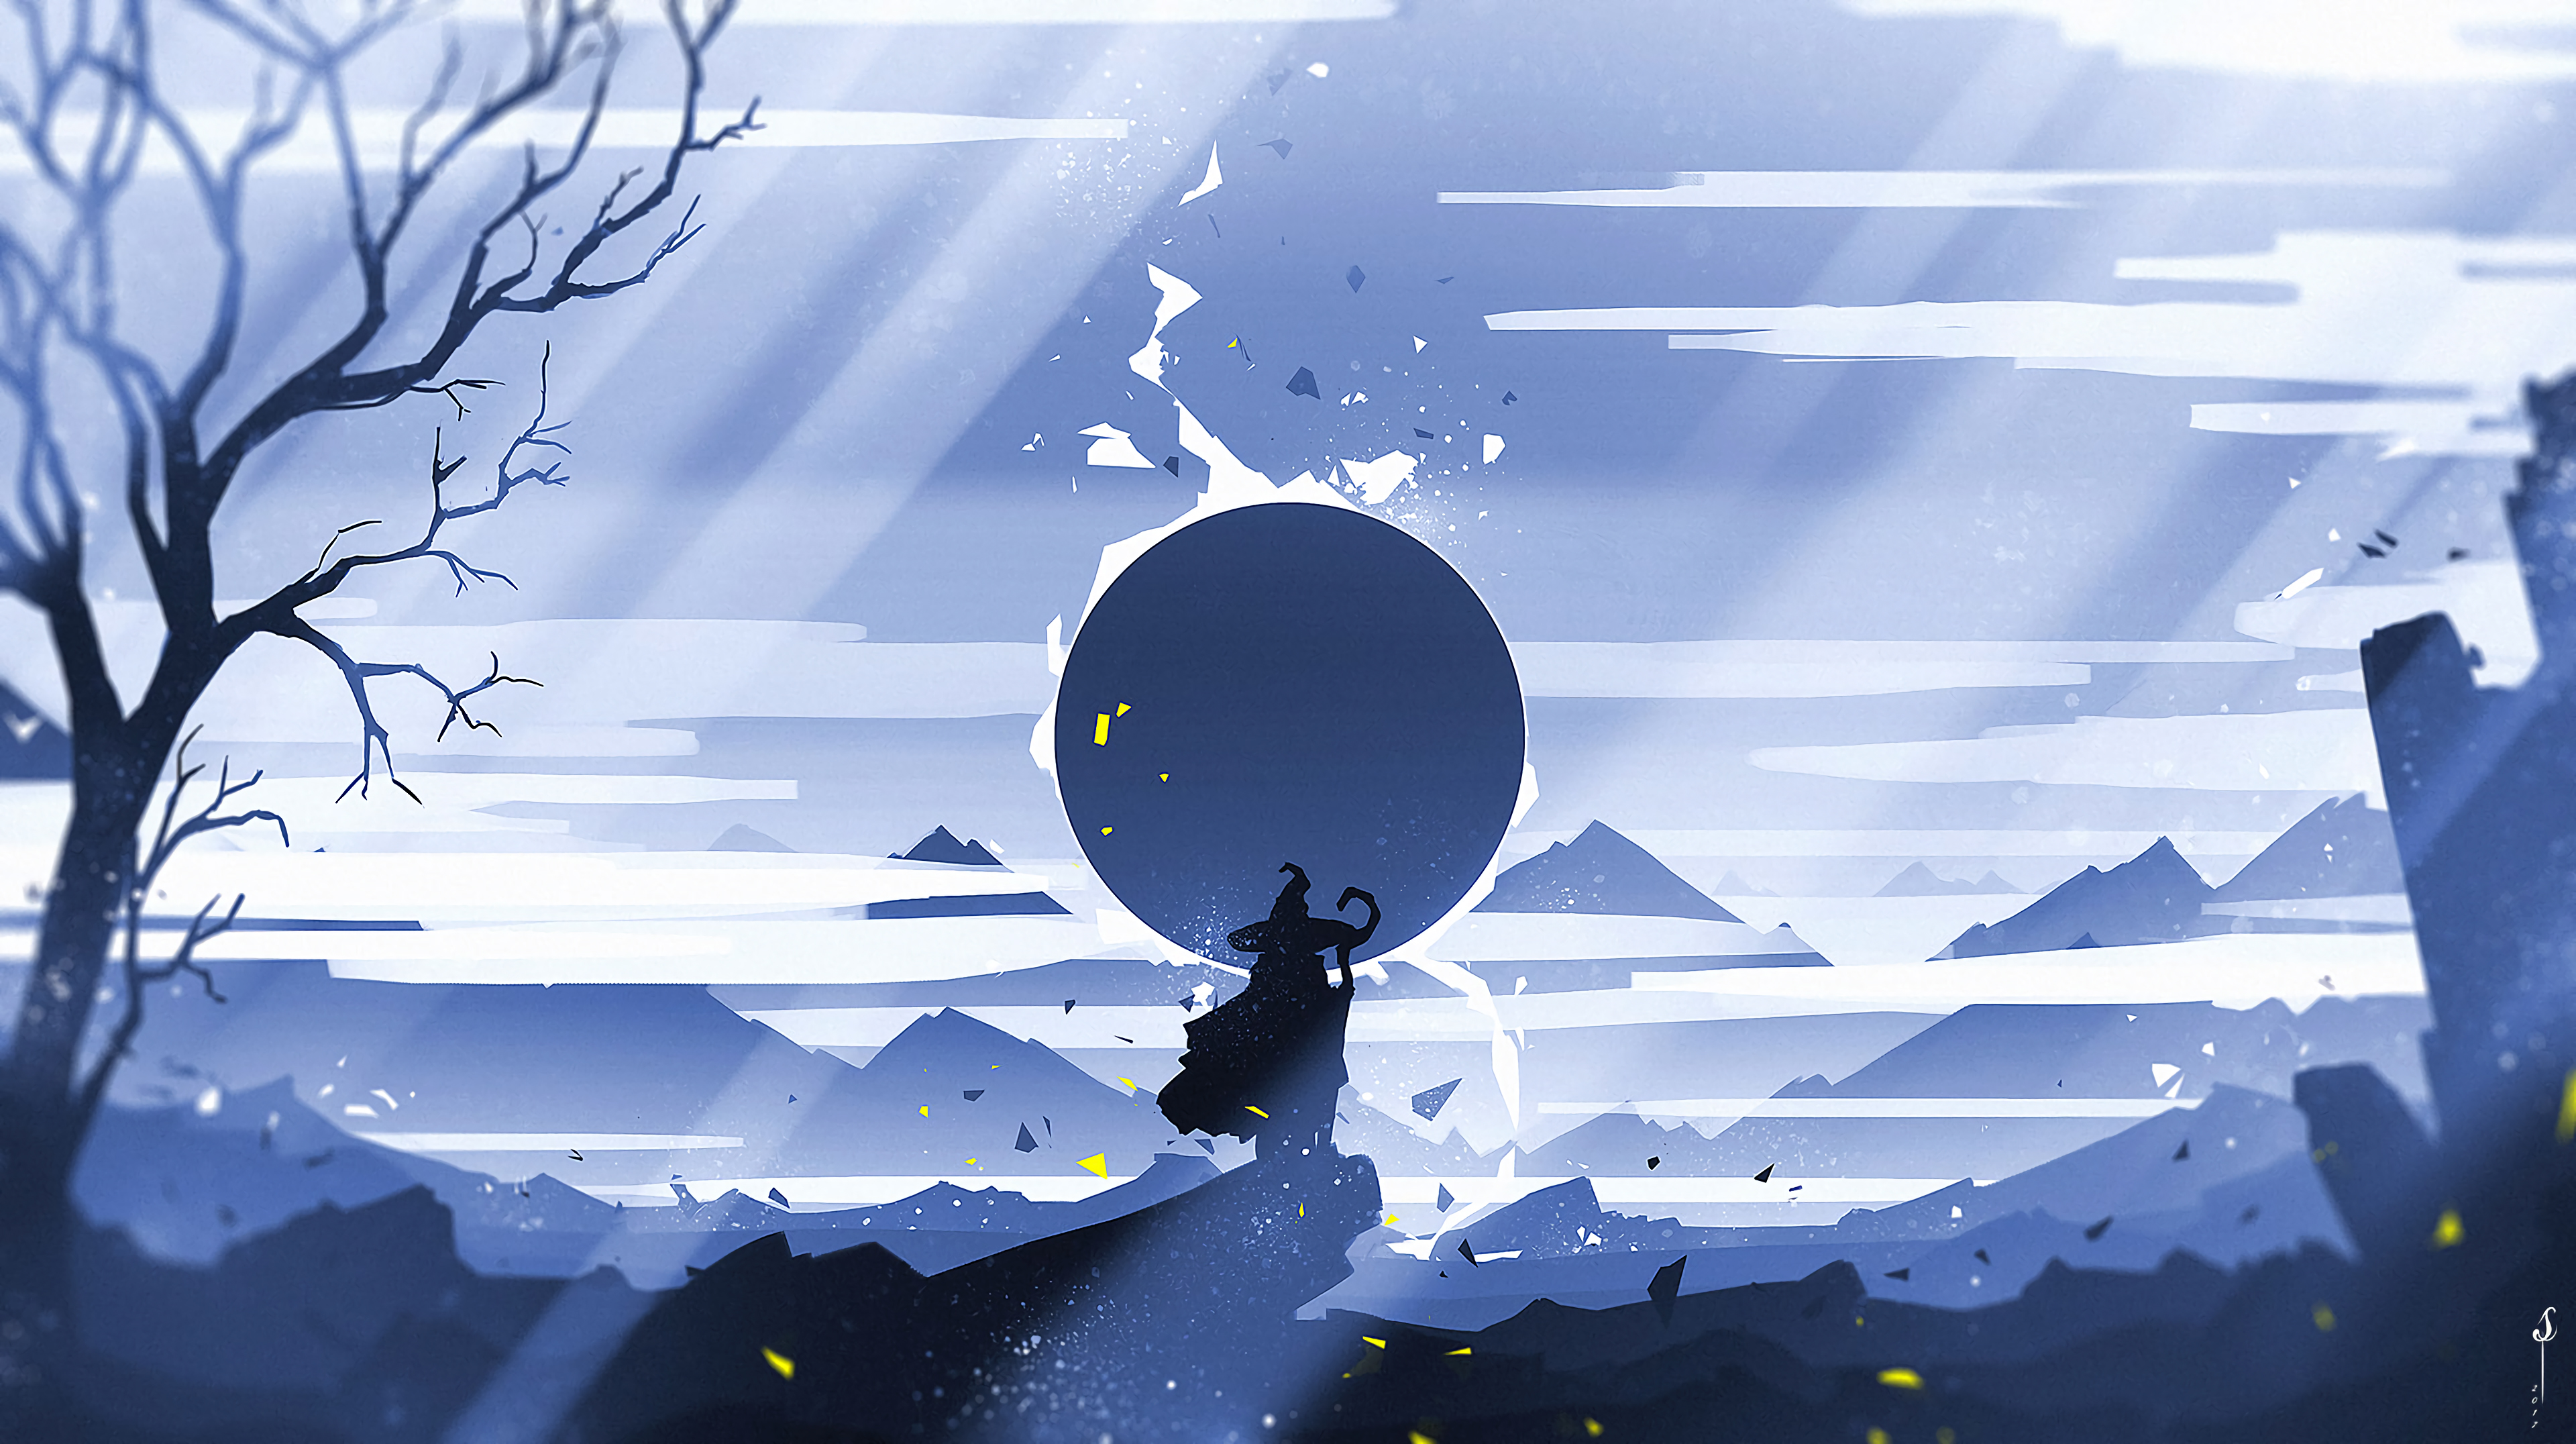 106611 download wallpaper Art, Mountains, Sun, Vector, Silhouette, Journey screensavers and pictures for free